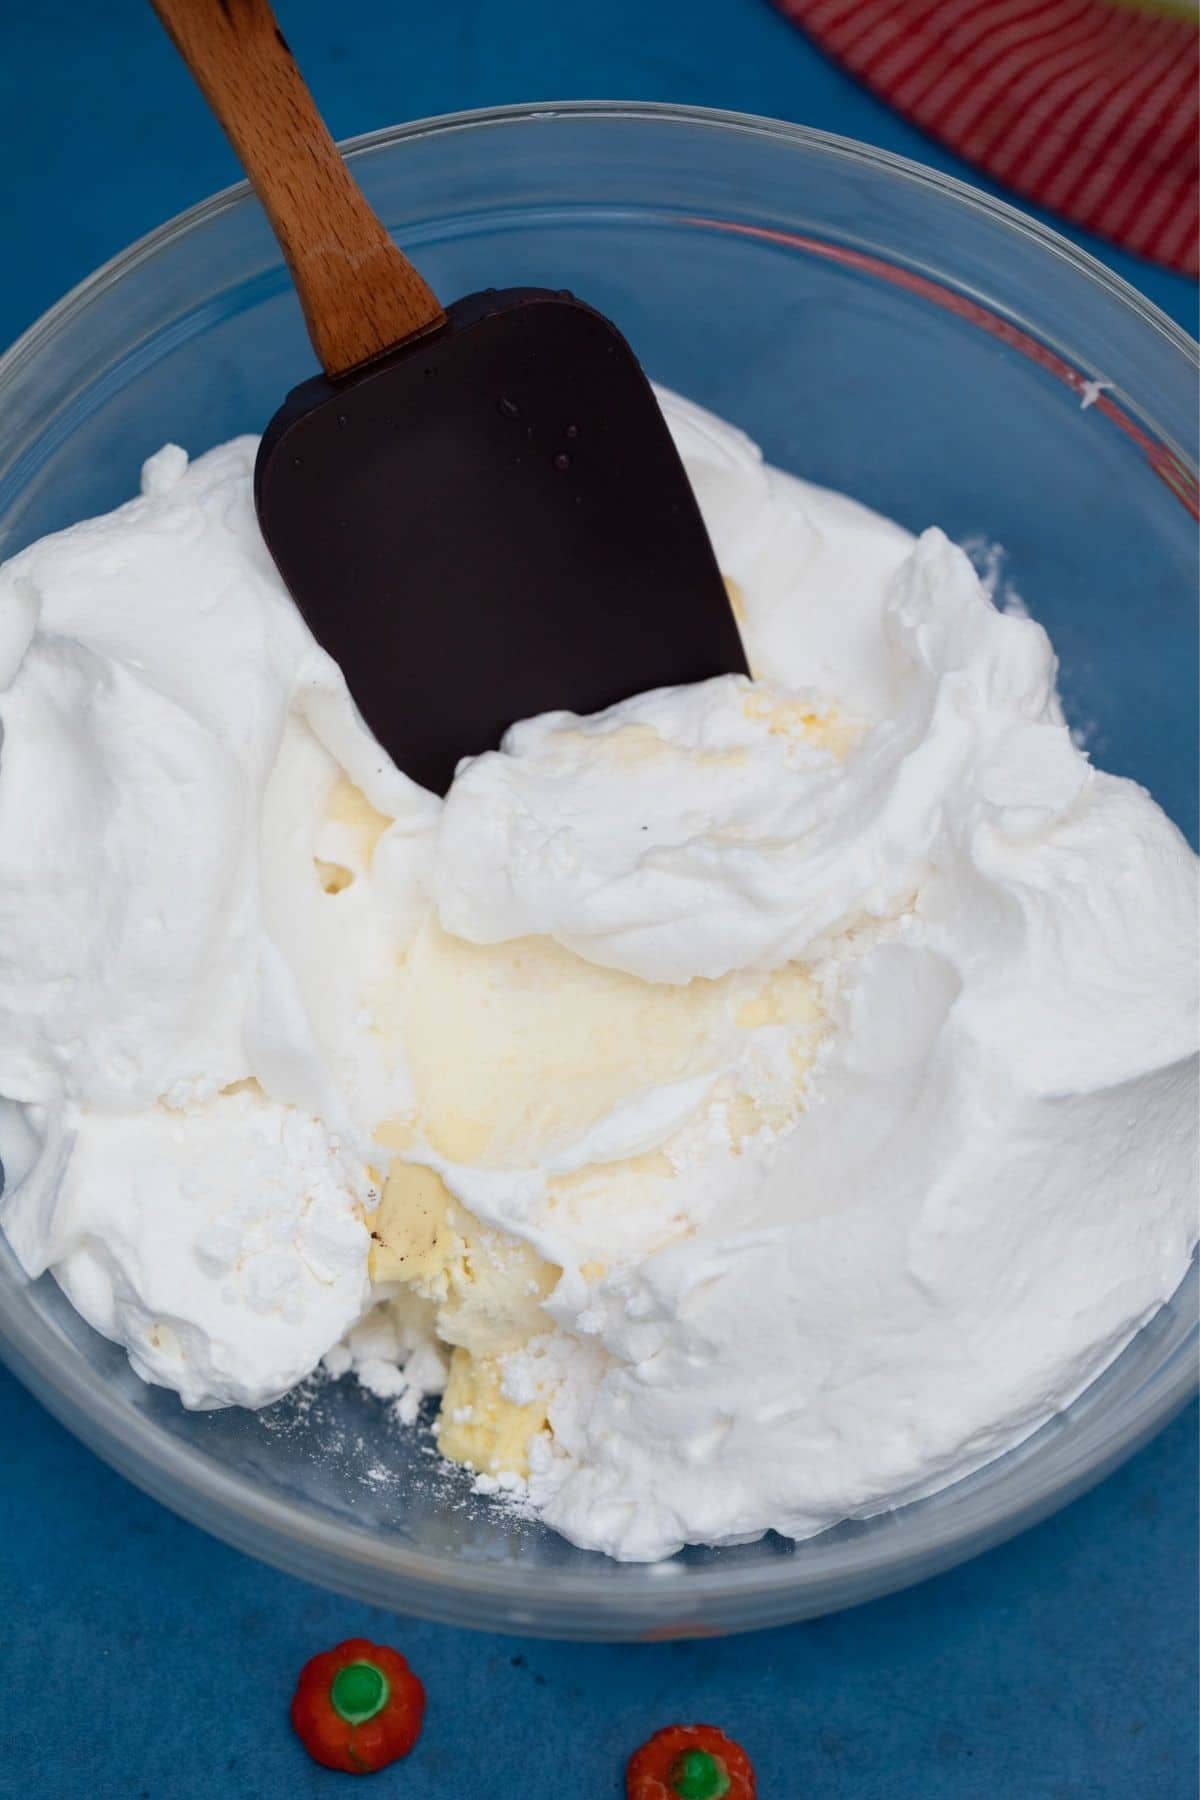 Glass bowl of cream cheese and whipped topping